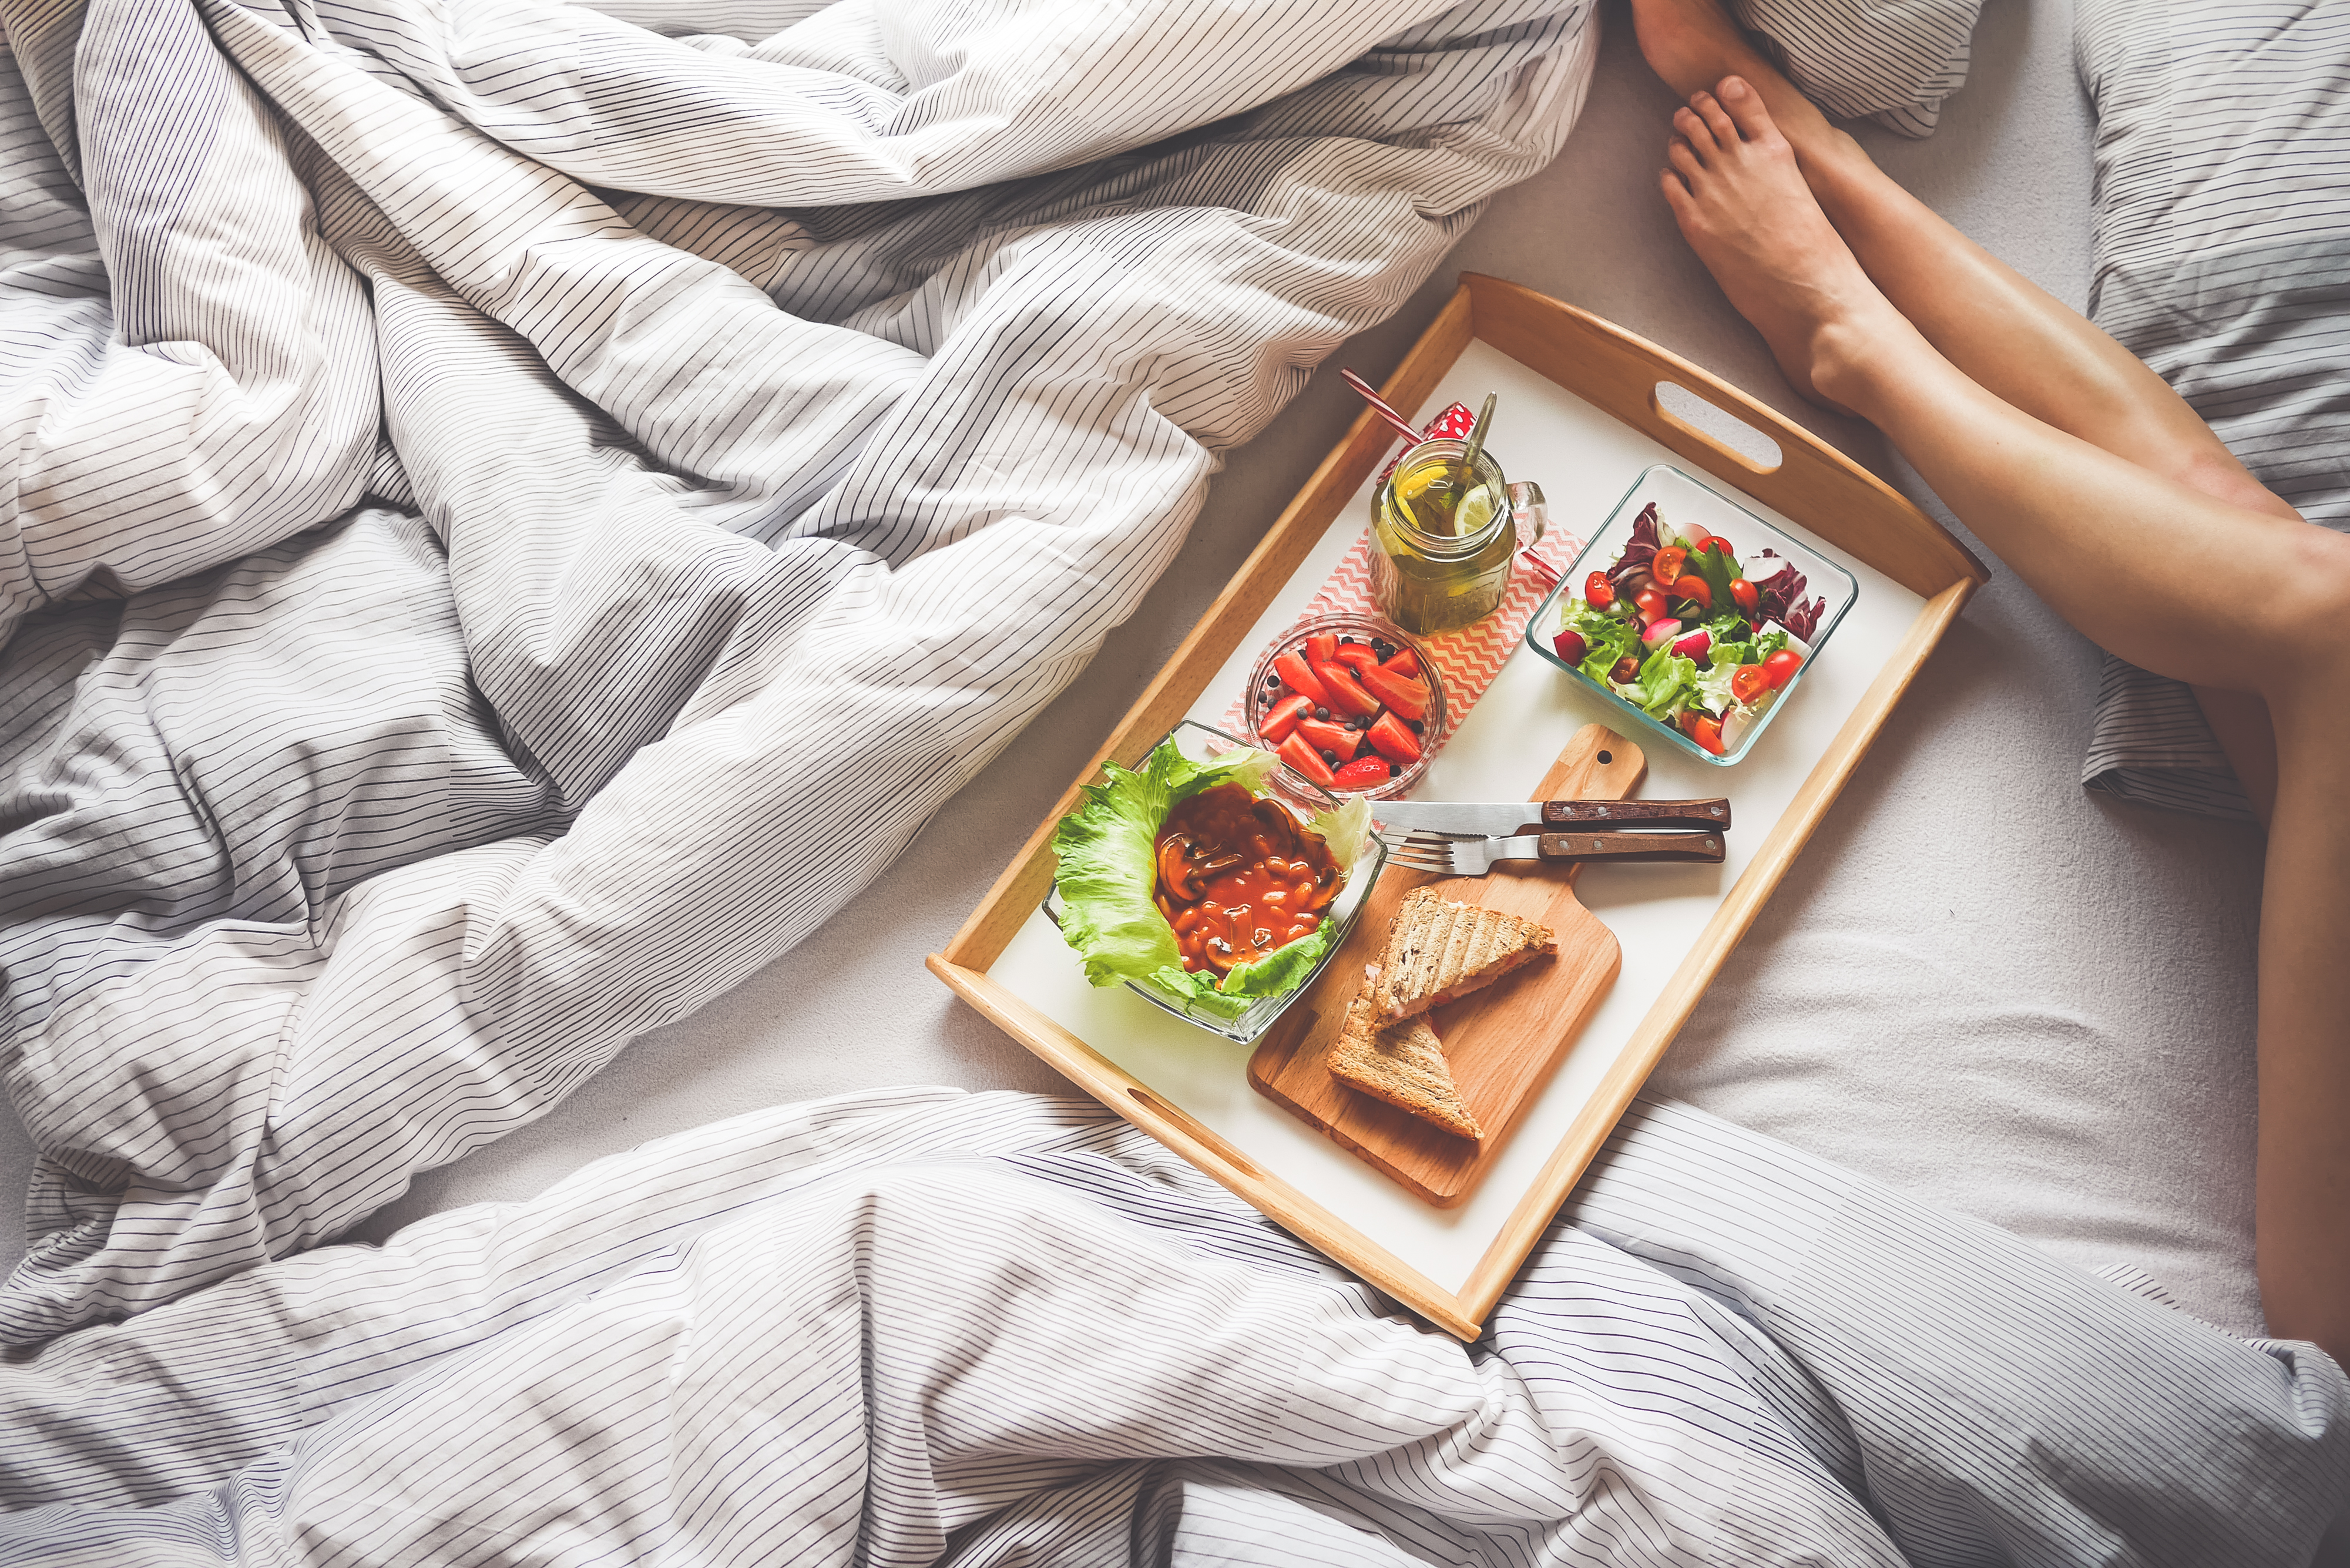 Guest Post: Foods to Avoid at Dinner for a Good Night's Sleep